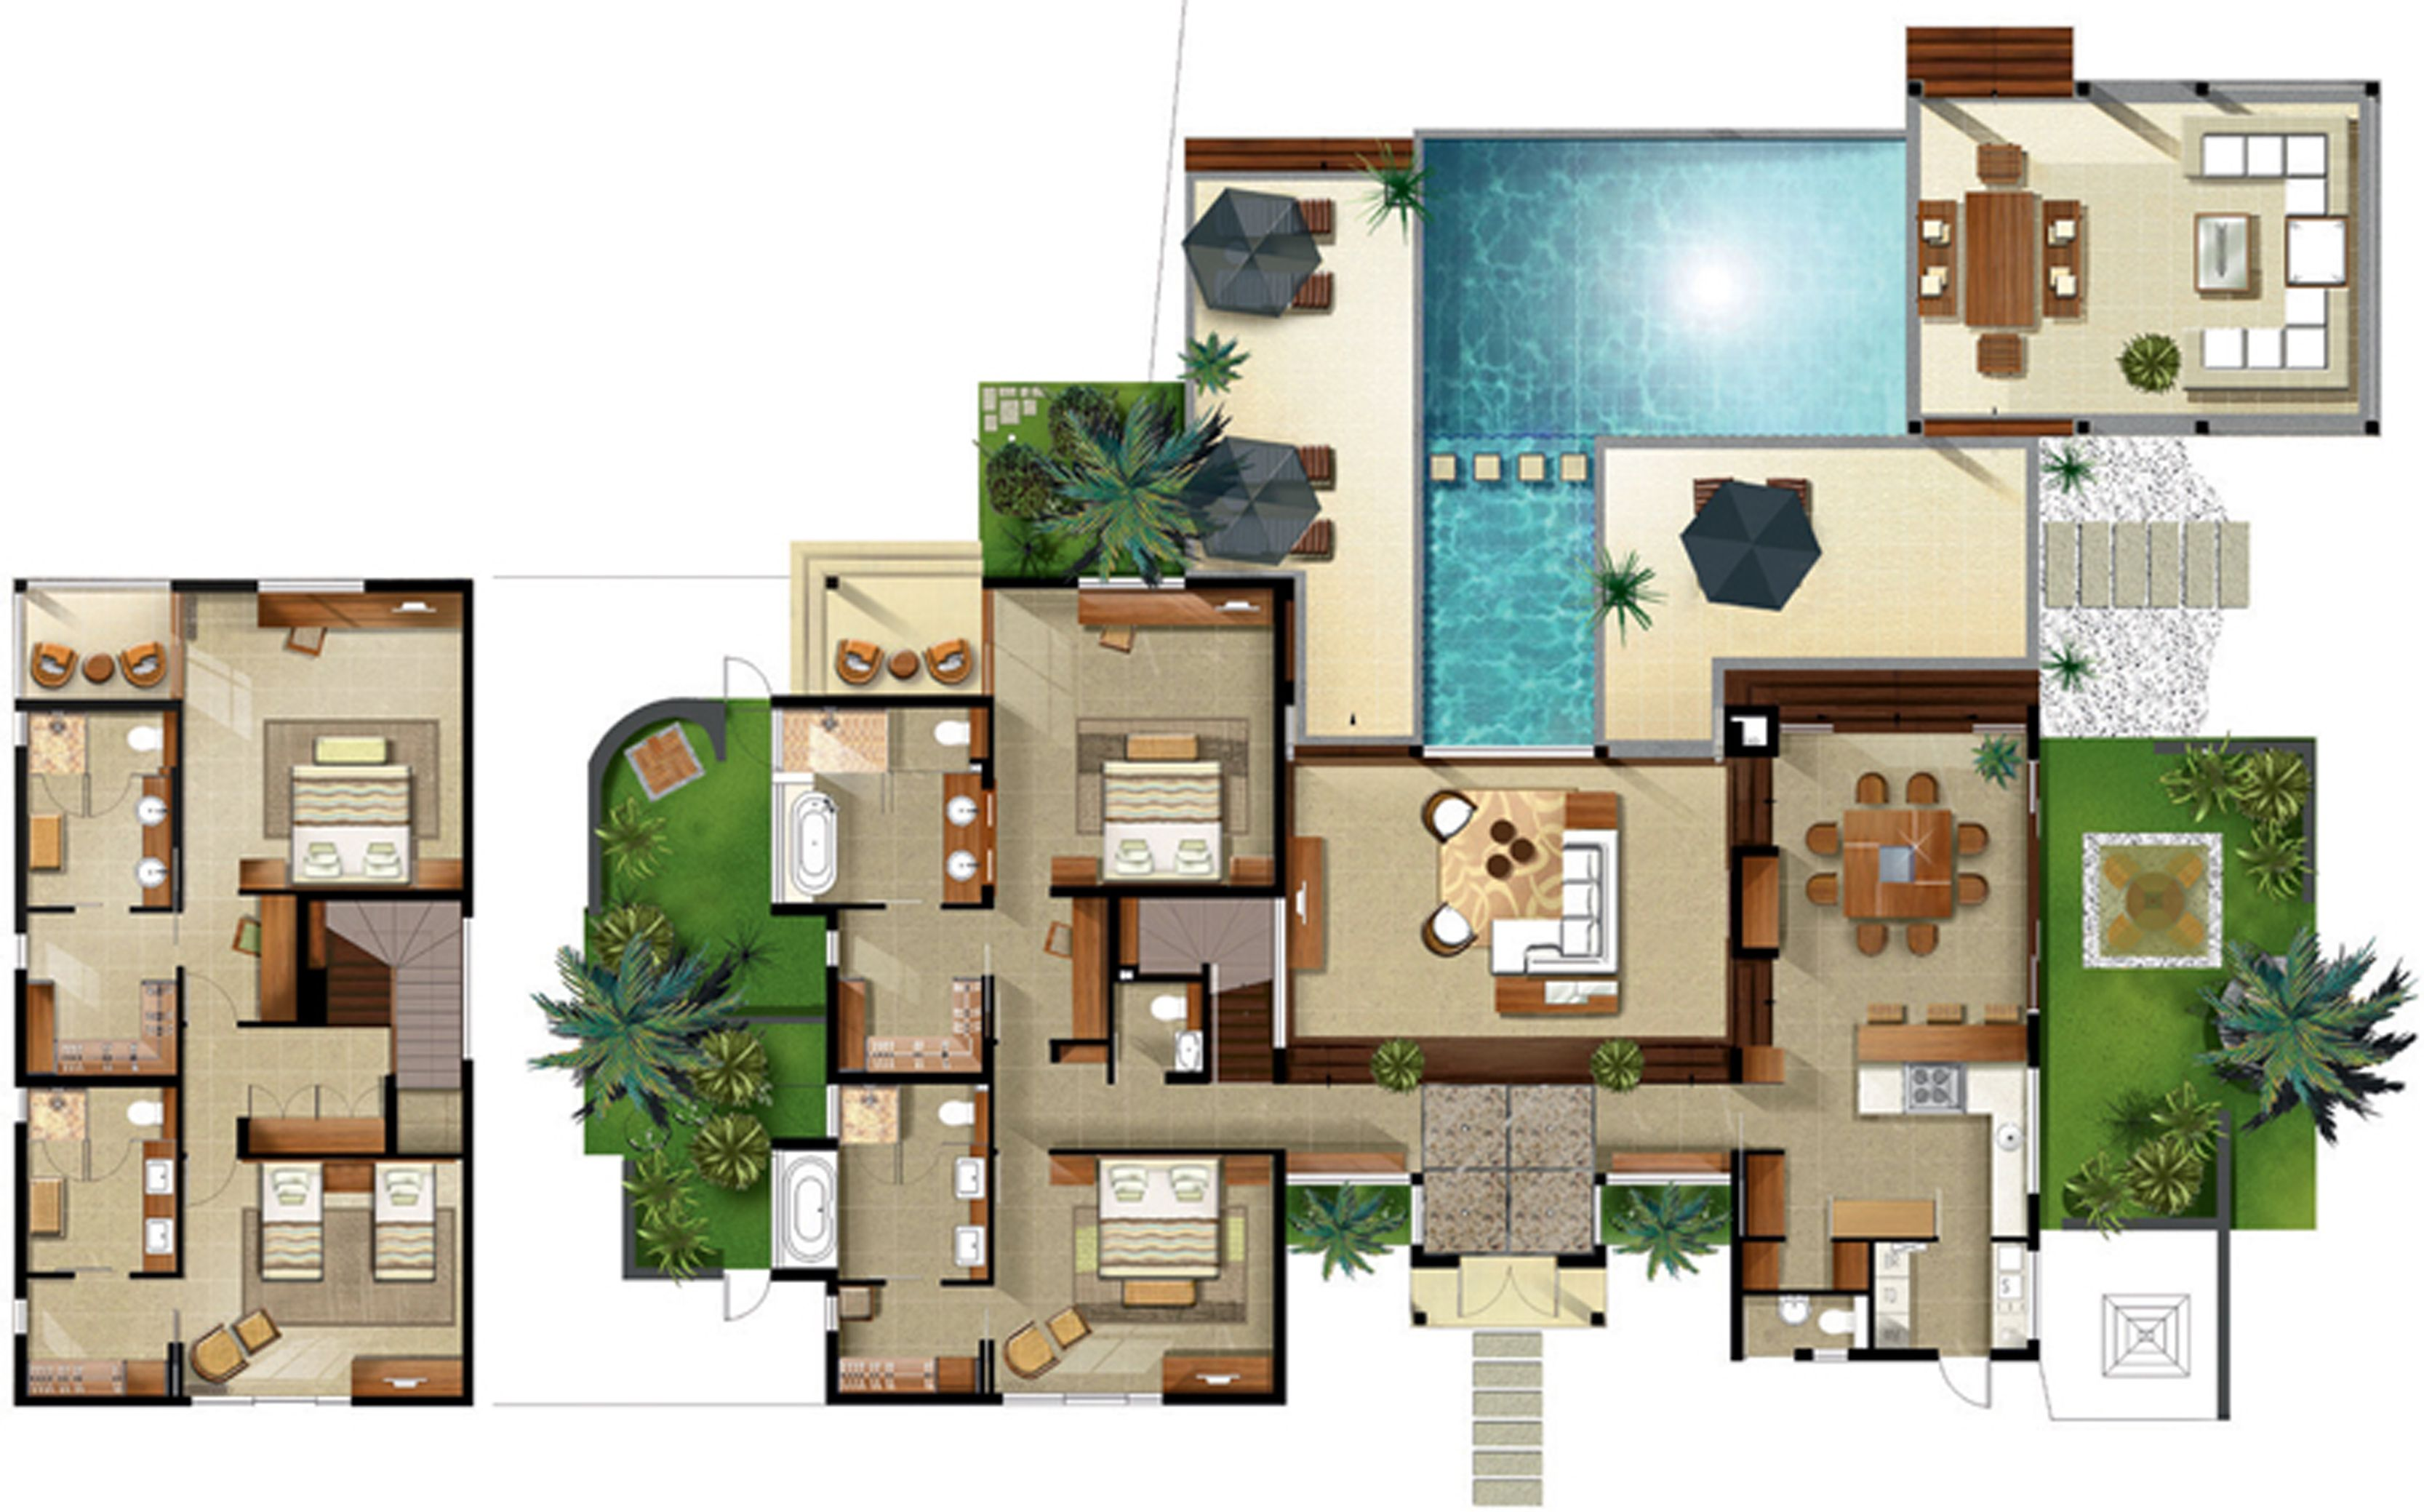 Disney beach club villas floor plan resort villa floor plan lrg 3333 2079 for Plan villa de luxe